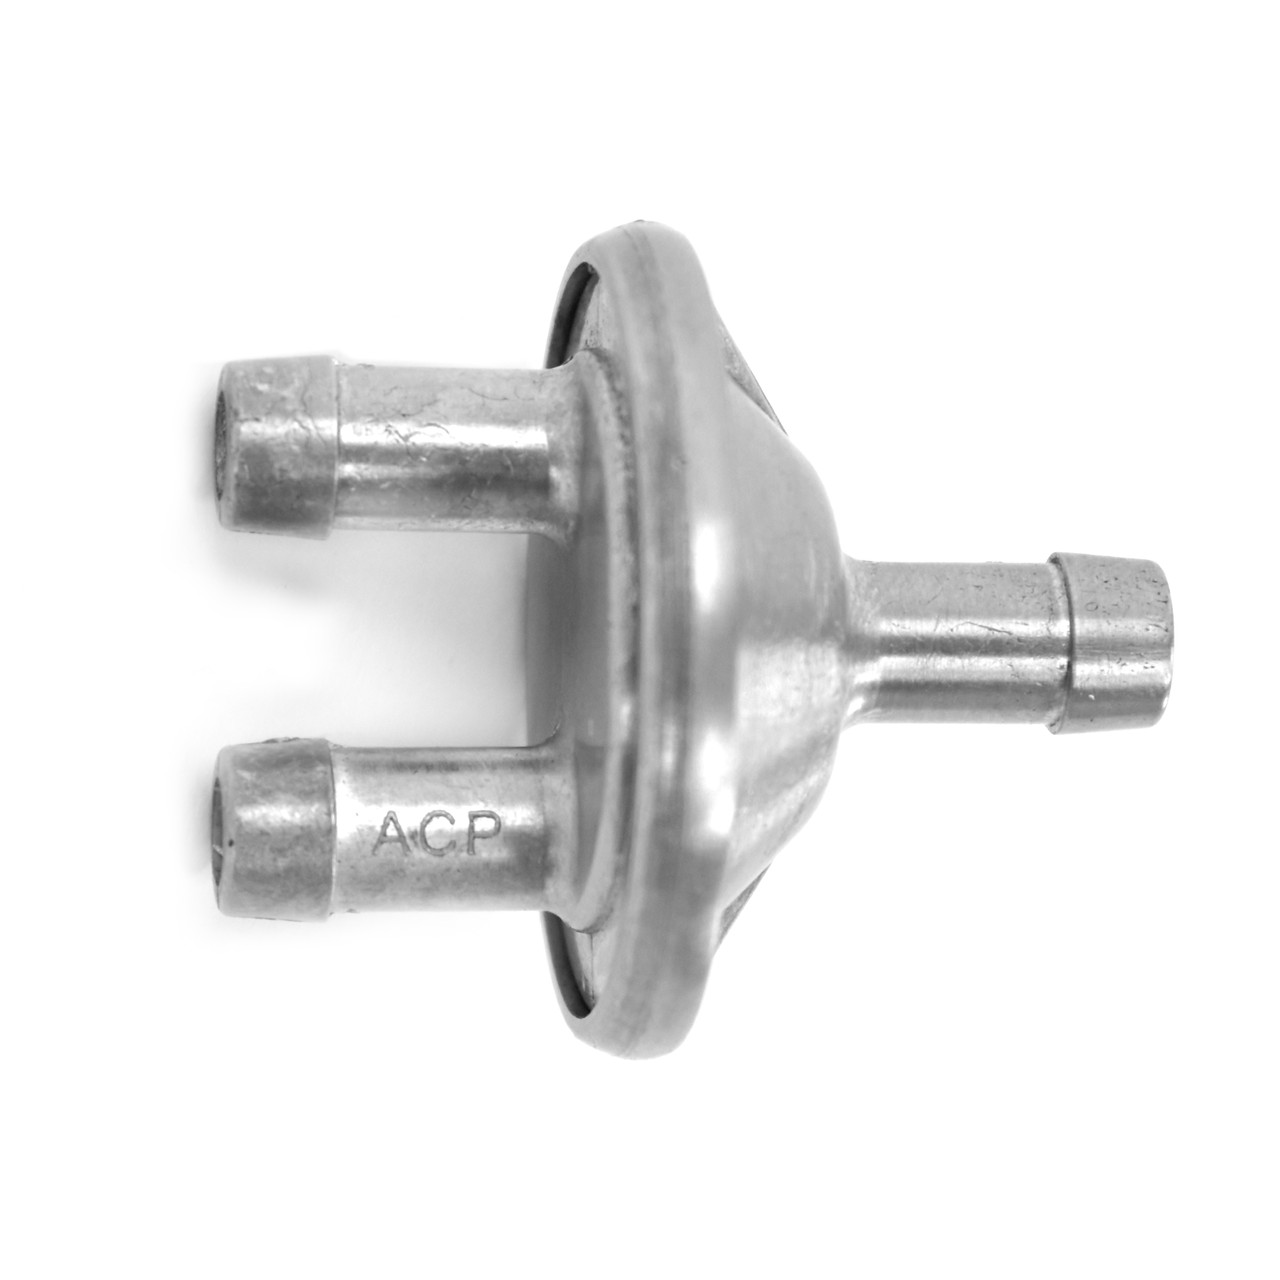 ACP FM-VCV01 1967-1973 Lincoln Continental Vacuum Check Valve for Headlight/Tilt-Away Column